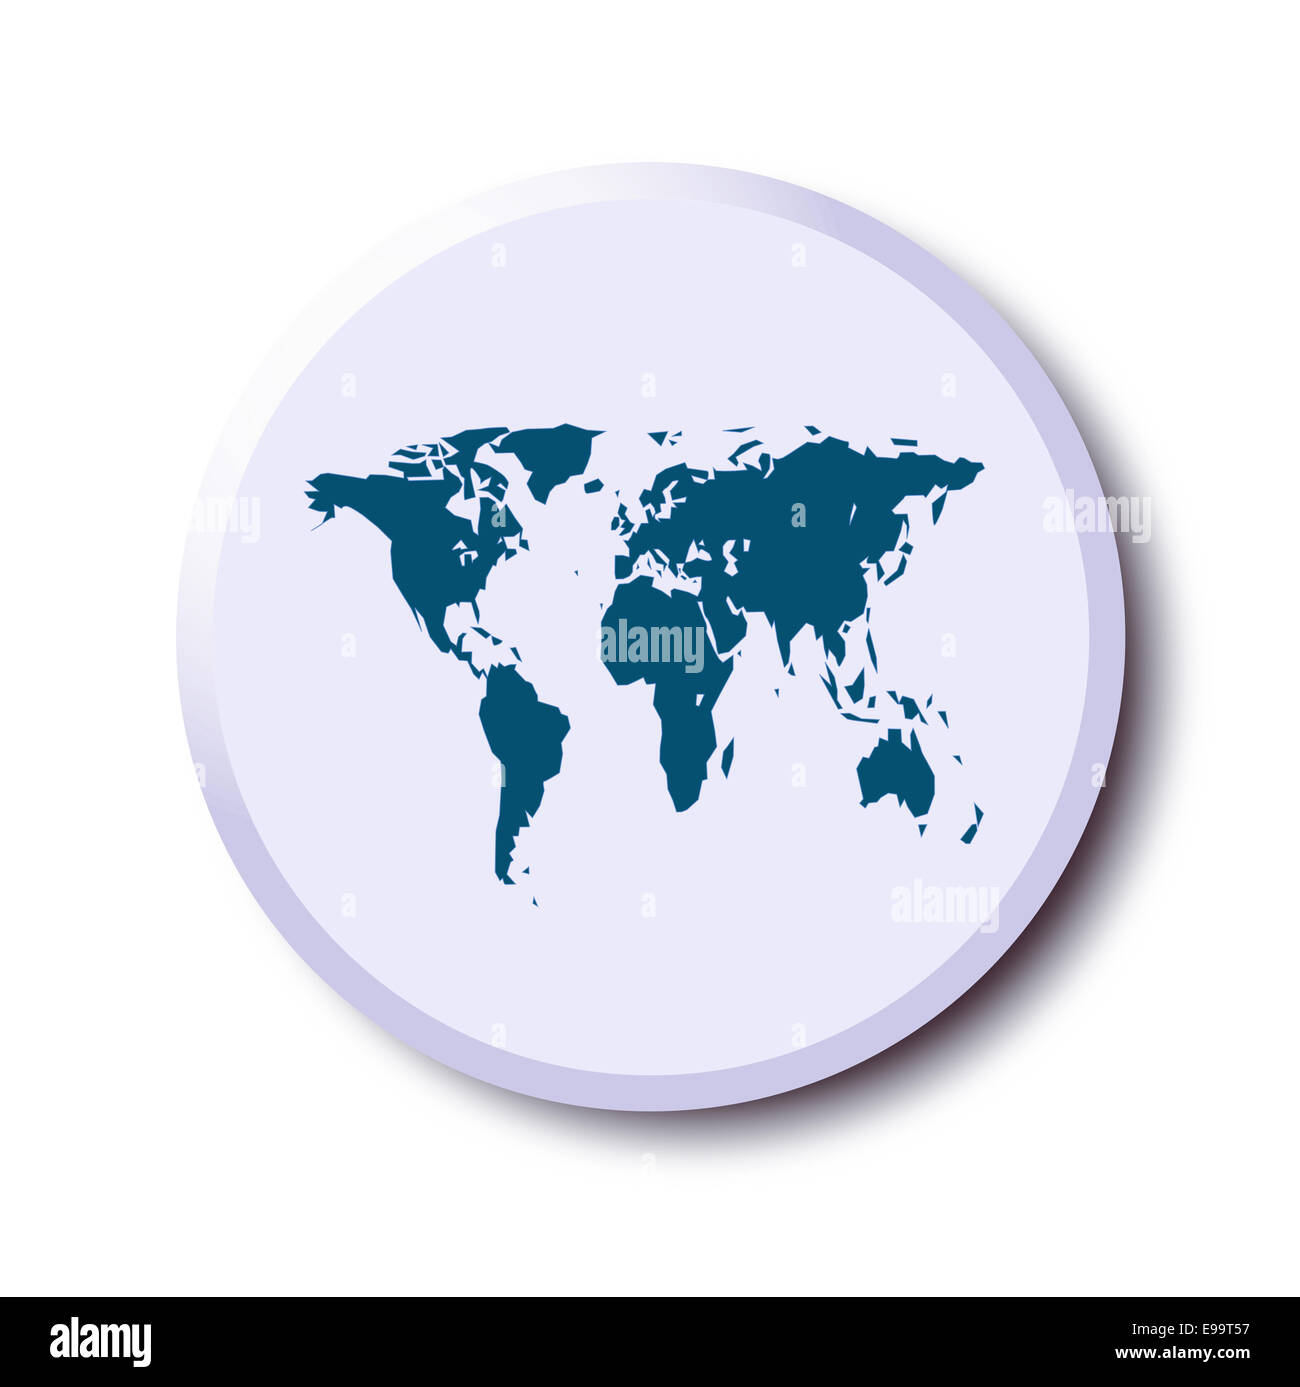 button graphic - Stock Image